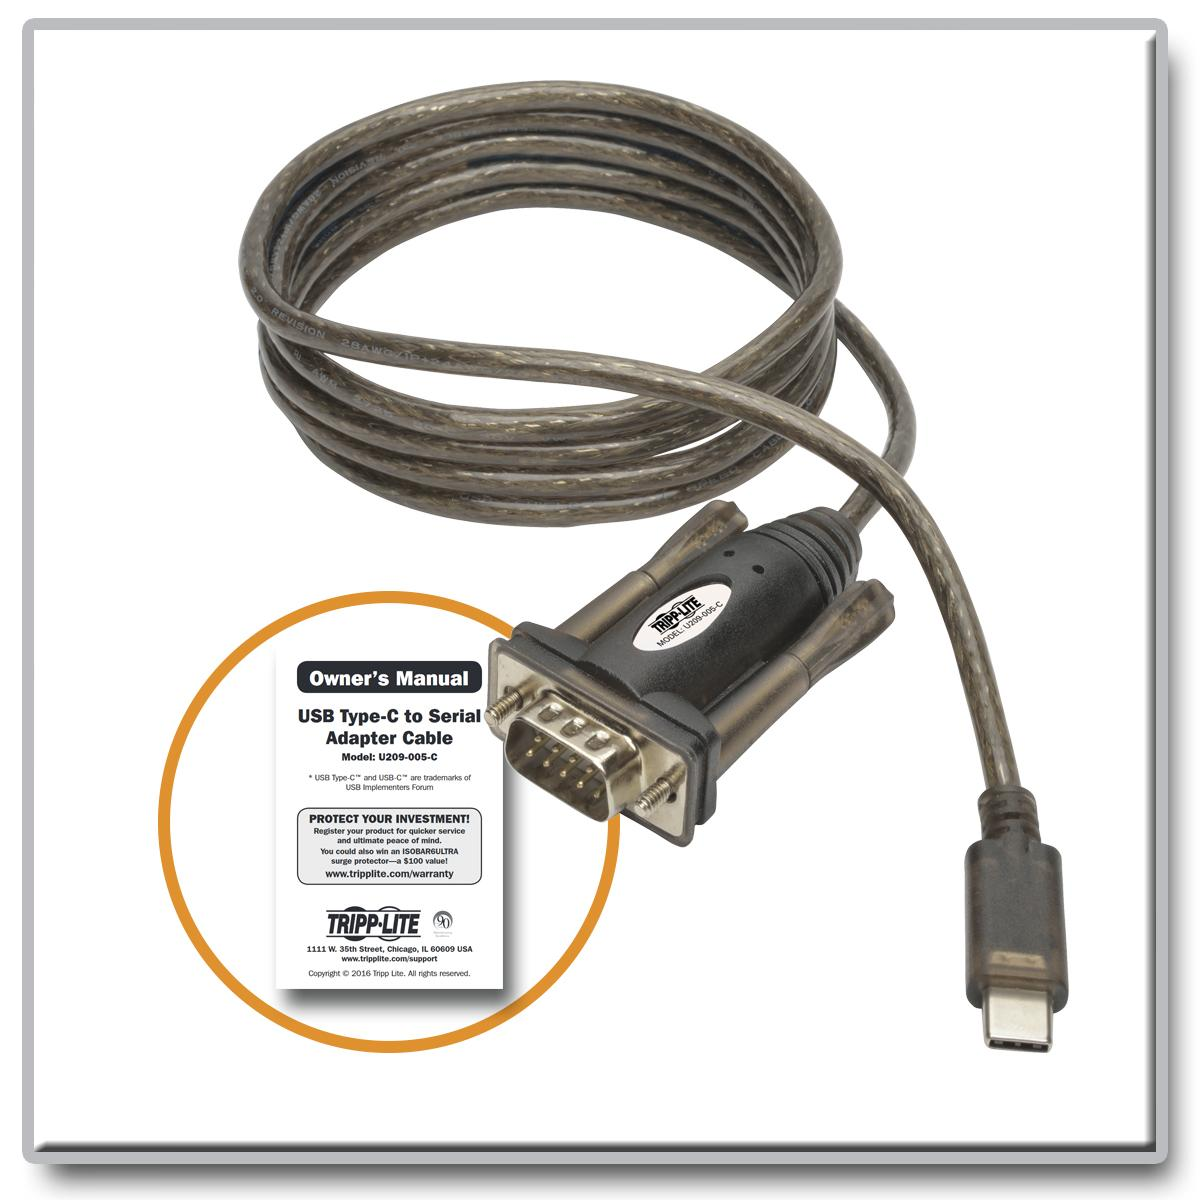 Amazon.com: Tripp Lite USB-C to DB9 Serial Adapter Cable, 5' USB 2.0 on usb pin out schematic, usb circuit schematic, usb port schematic, usb power schematic, mini usb schematic, usb cable schematic, usb keyboard schematic, ps2 to usb schematic, wireless mouse schematic, micro usb schematic, usb 2.0 schematic, usb diagram, usb switch schematic, usb splitter schematic, usb to ethernet cable pinout, usb controller schematic, usb schematic symbol, usb charger schematic, usb wire, usb to serial cable pinout,